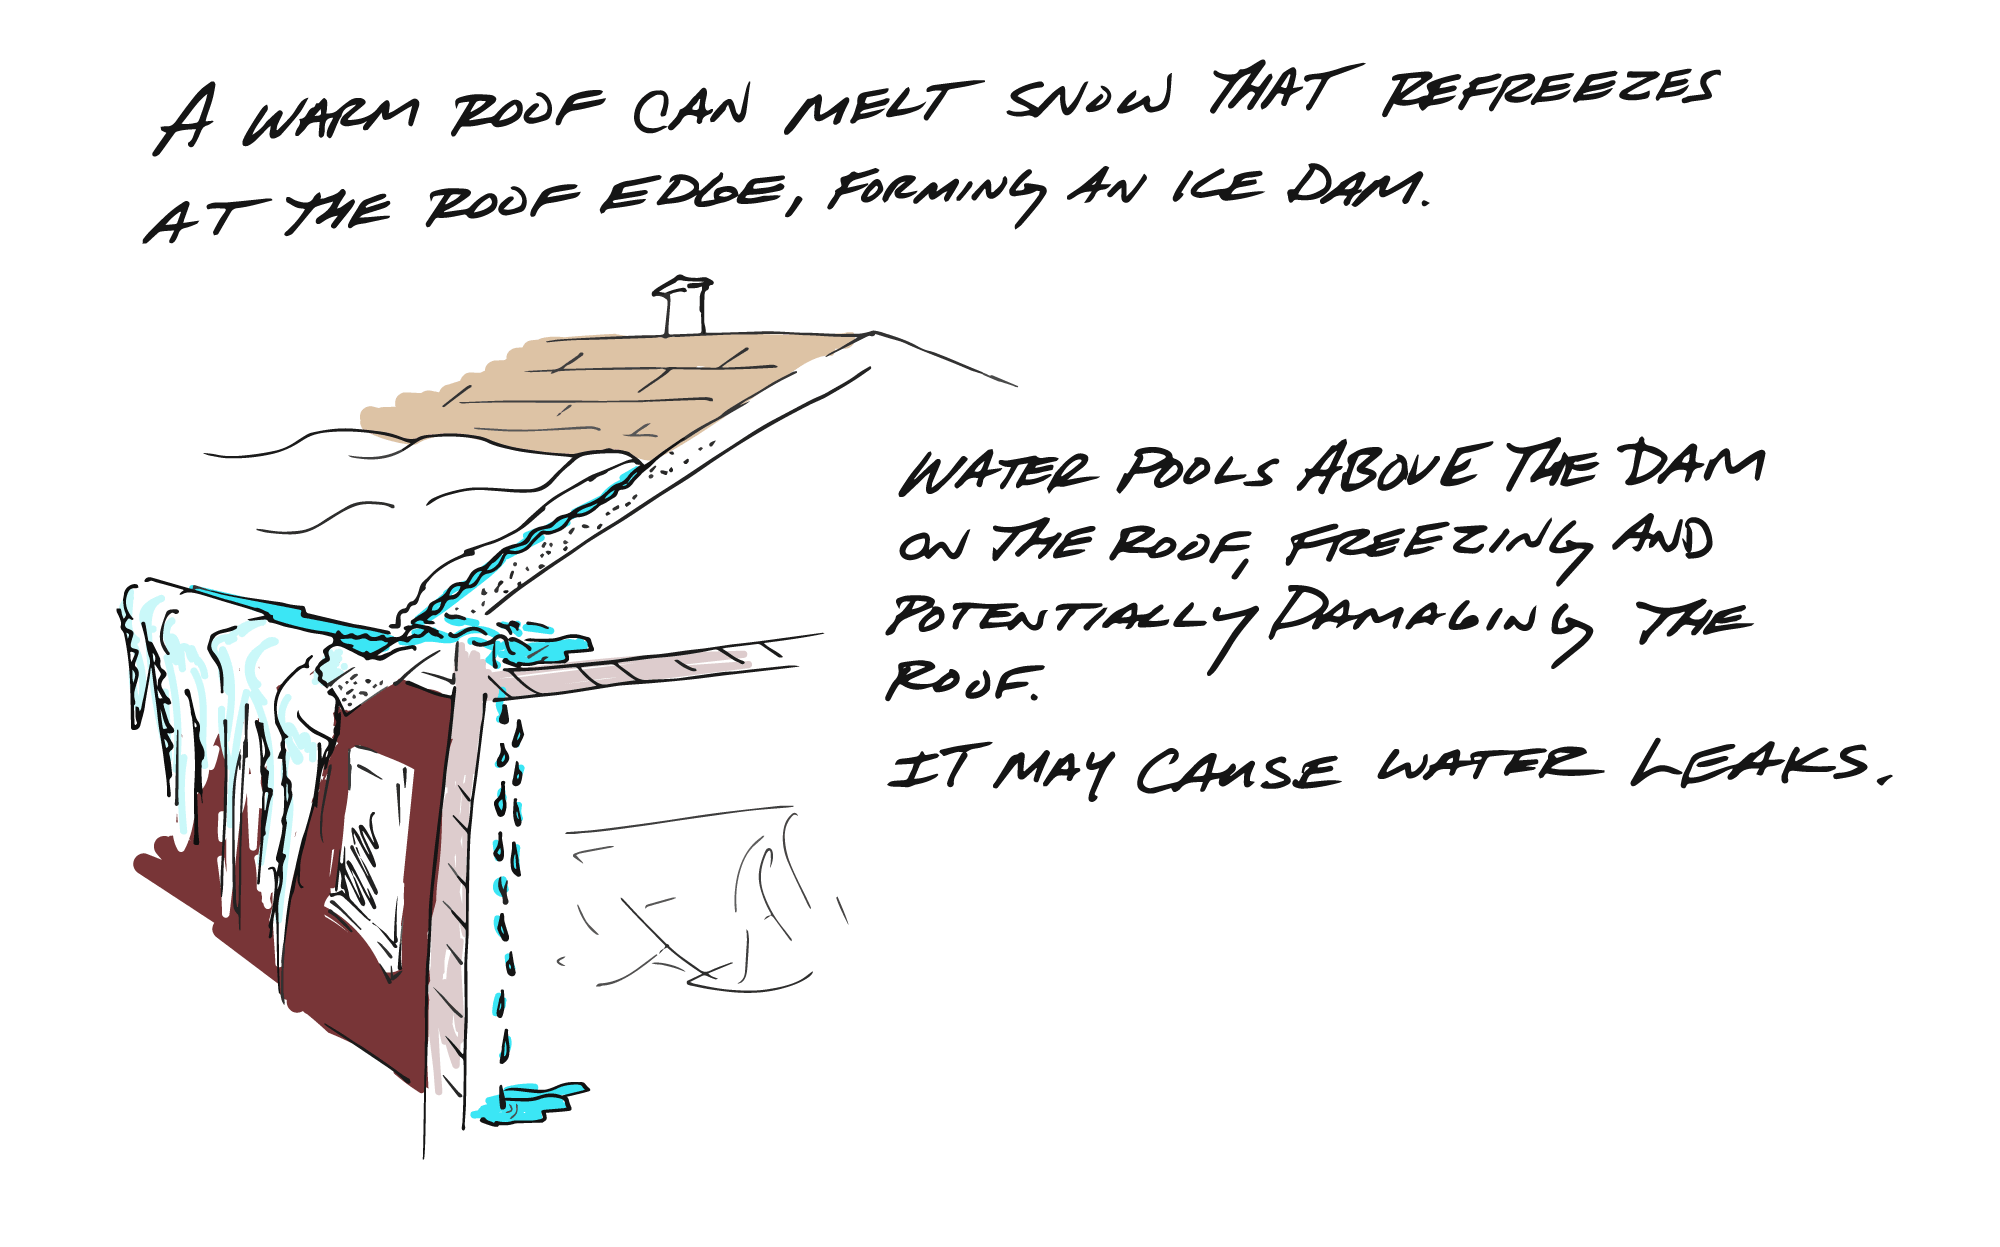 Improper insulation in a roof may cause ice dams.